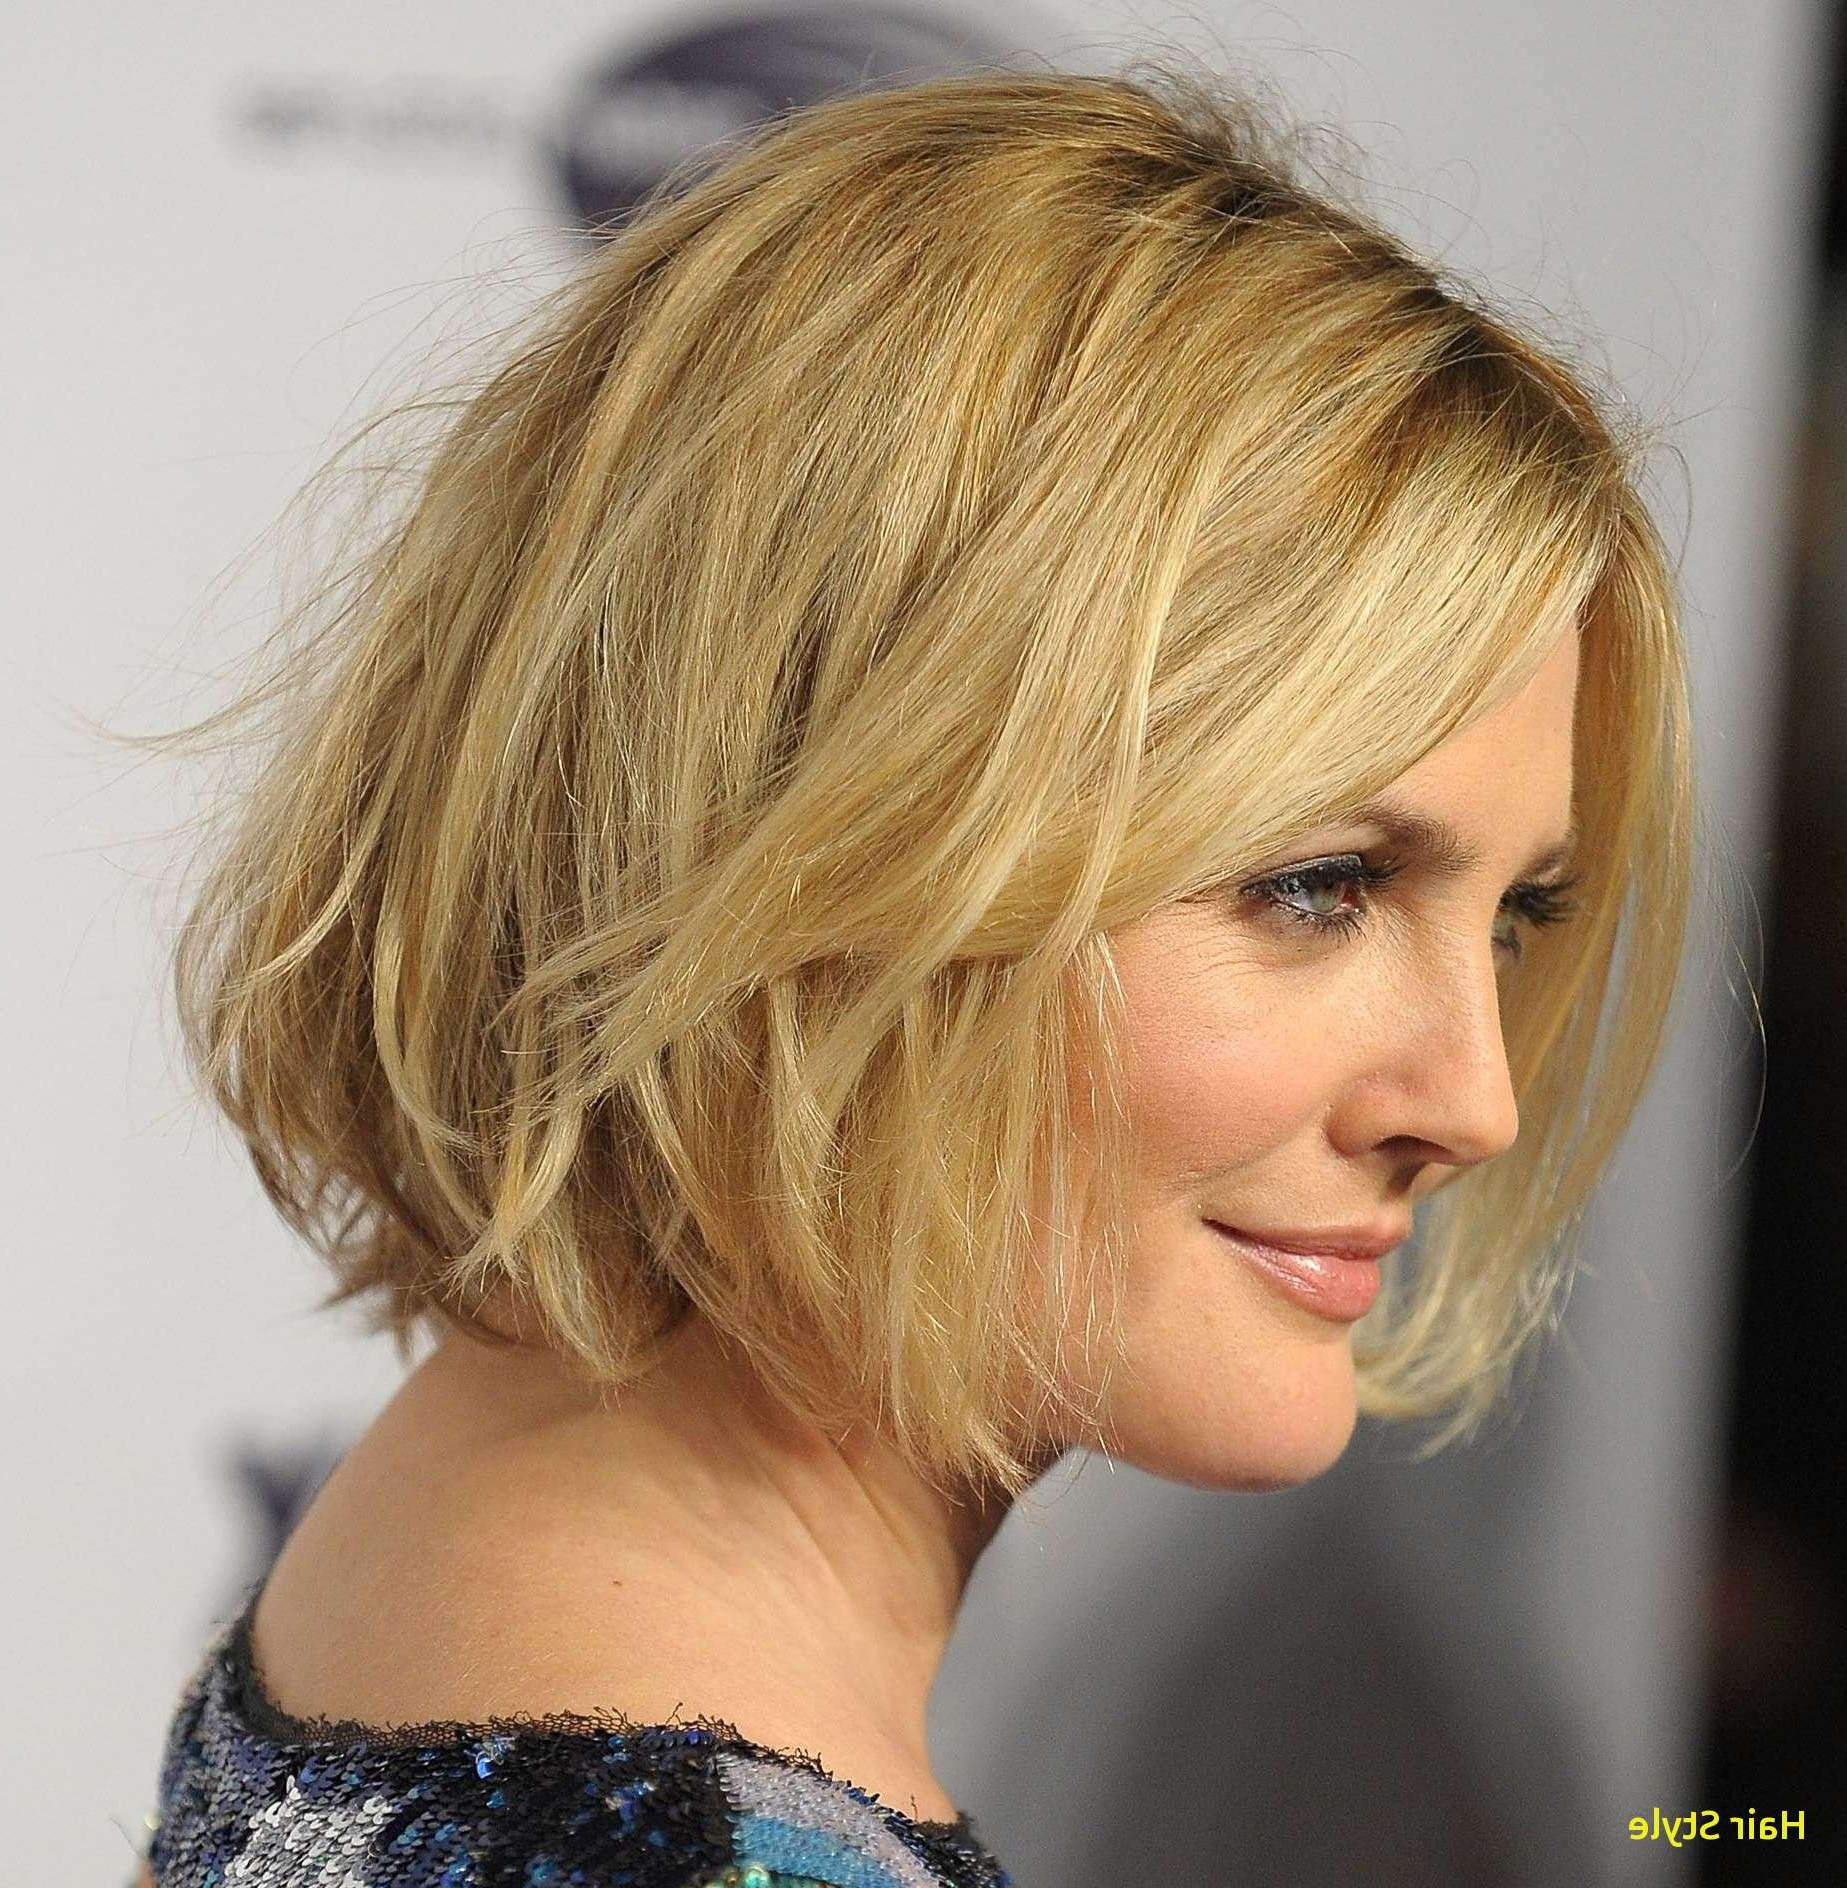 Drew Barrymore Short Hairstyles New Fresh Short Bob Hairstyles 2016 For Drew Barrymore Short Hairstyles (Gallery 4 of 25)